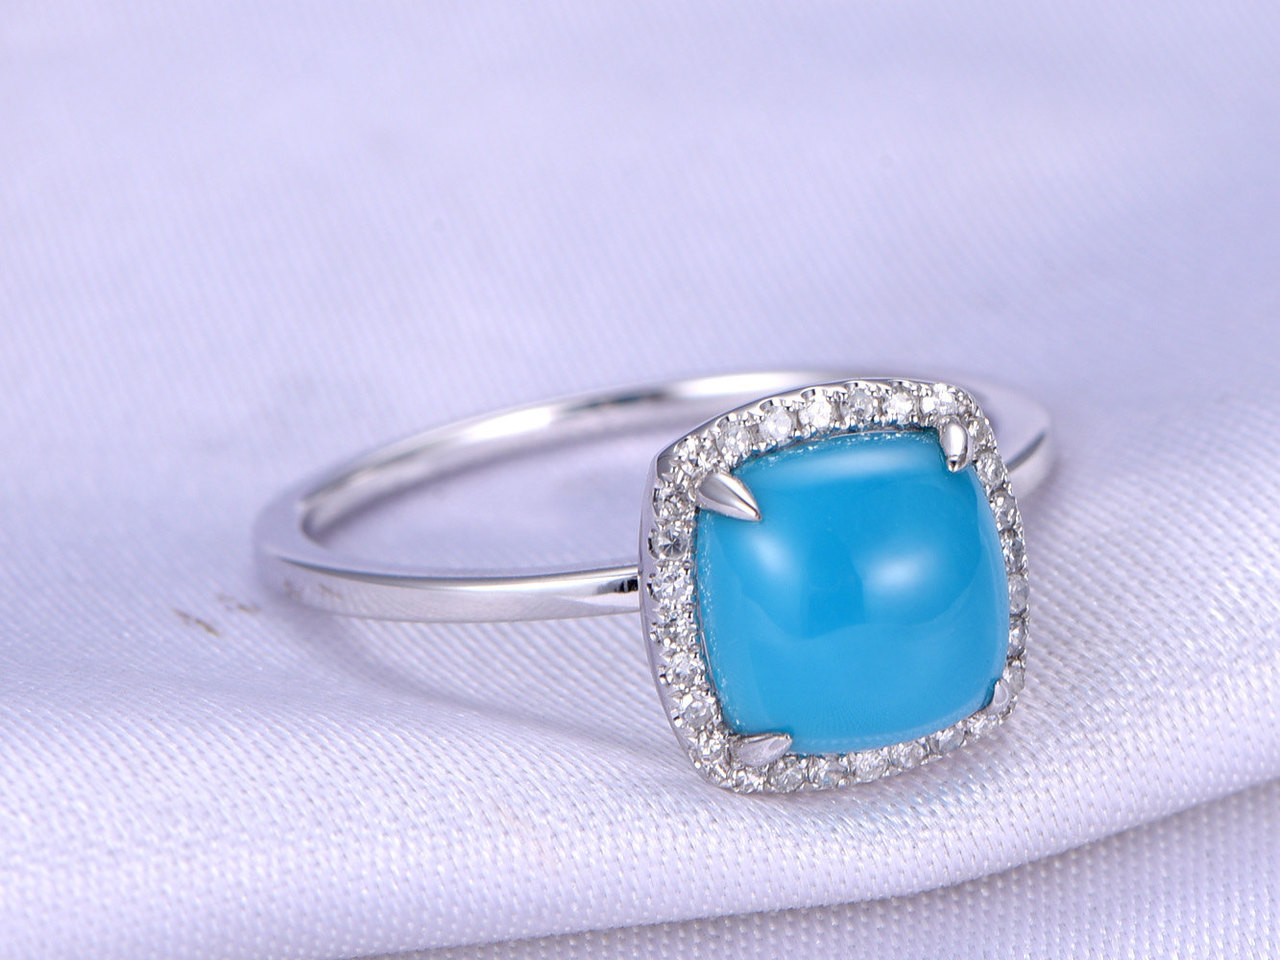 8mm Cushion Cut Turquoise Engagement ringSleeping Beauty Turquoise